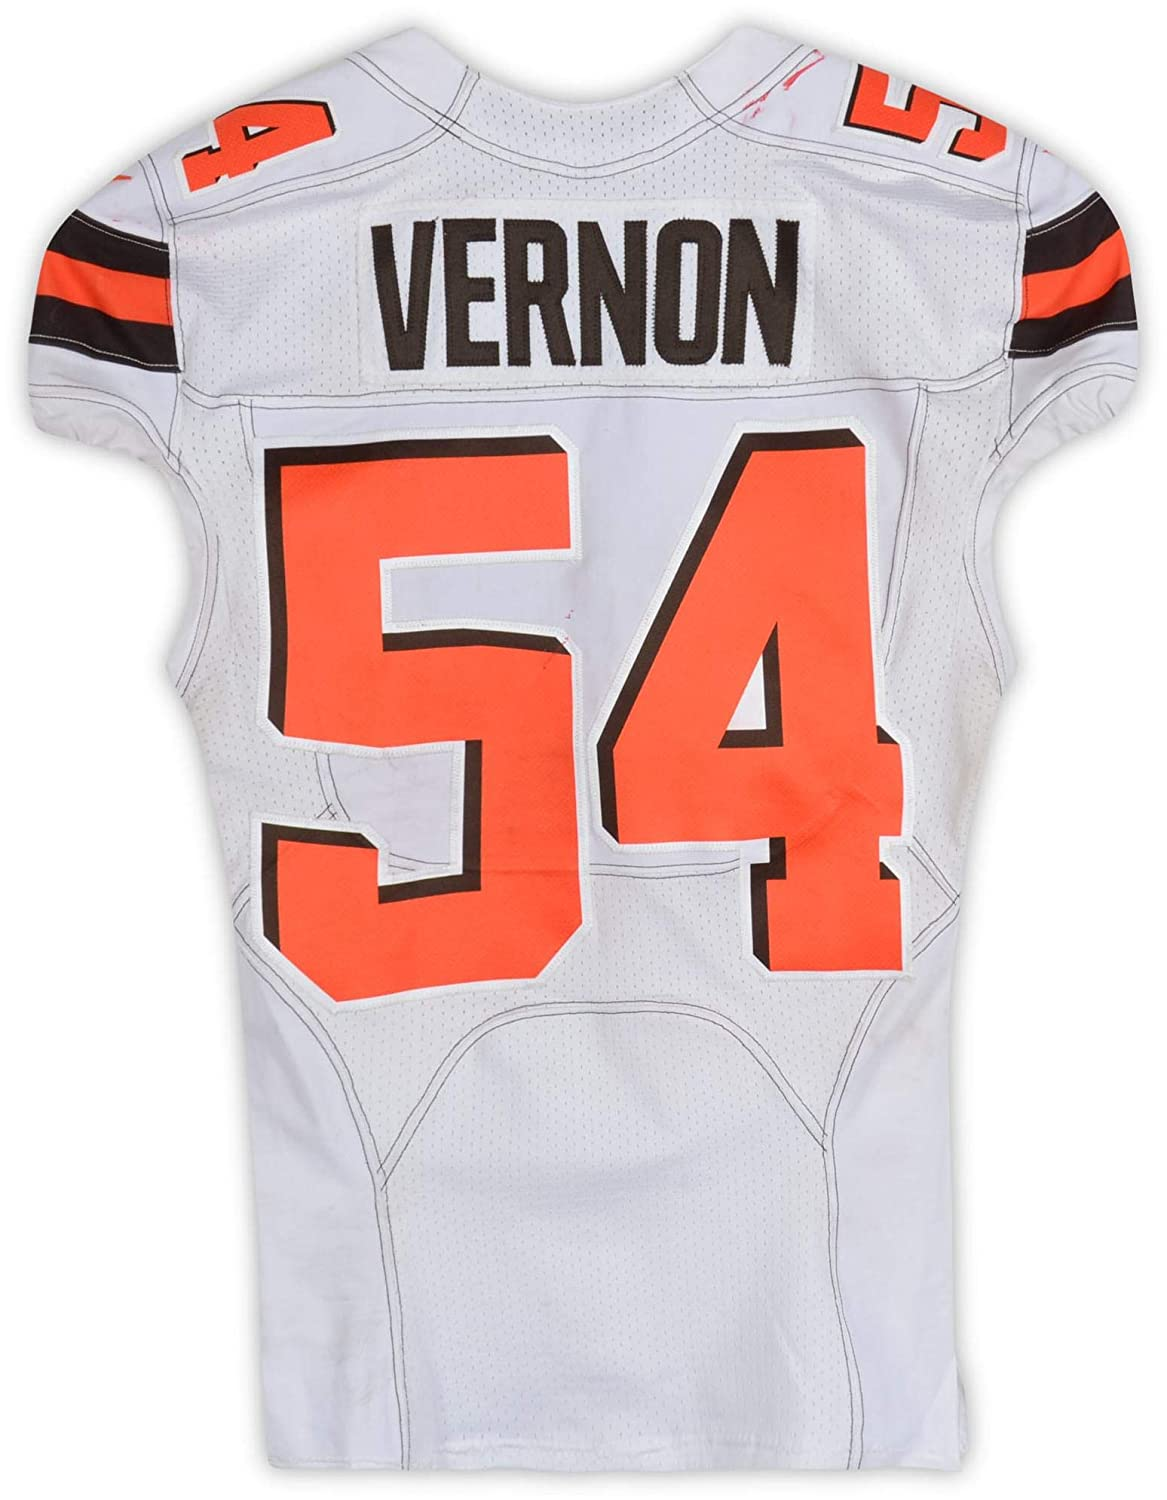 olivier vernon color rush jersey